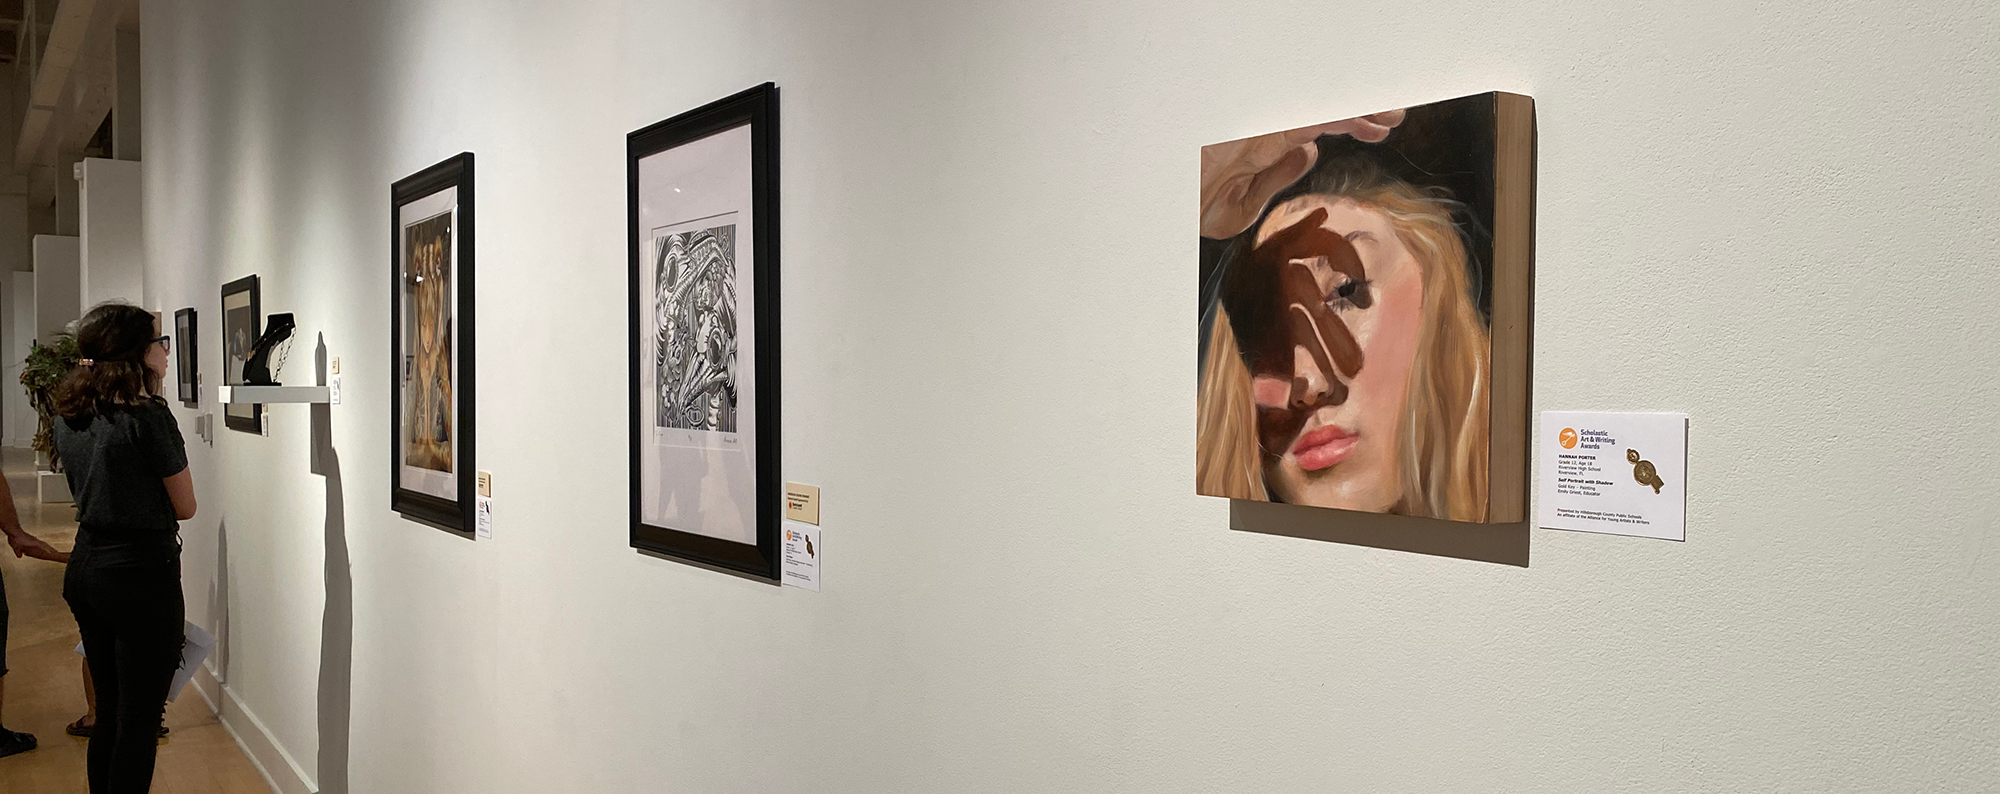 Attendees of the Scholastic Art & Writing Awards view art that is being exhibited